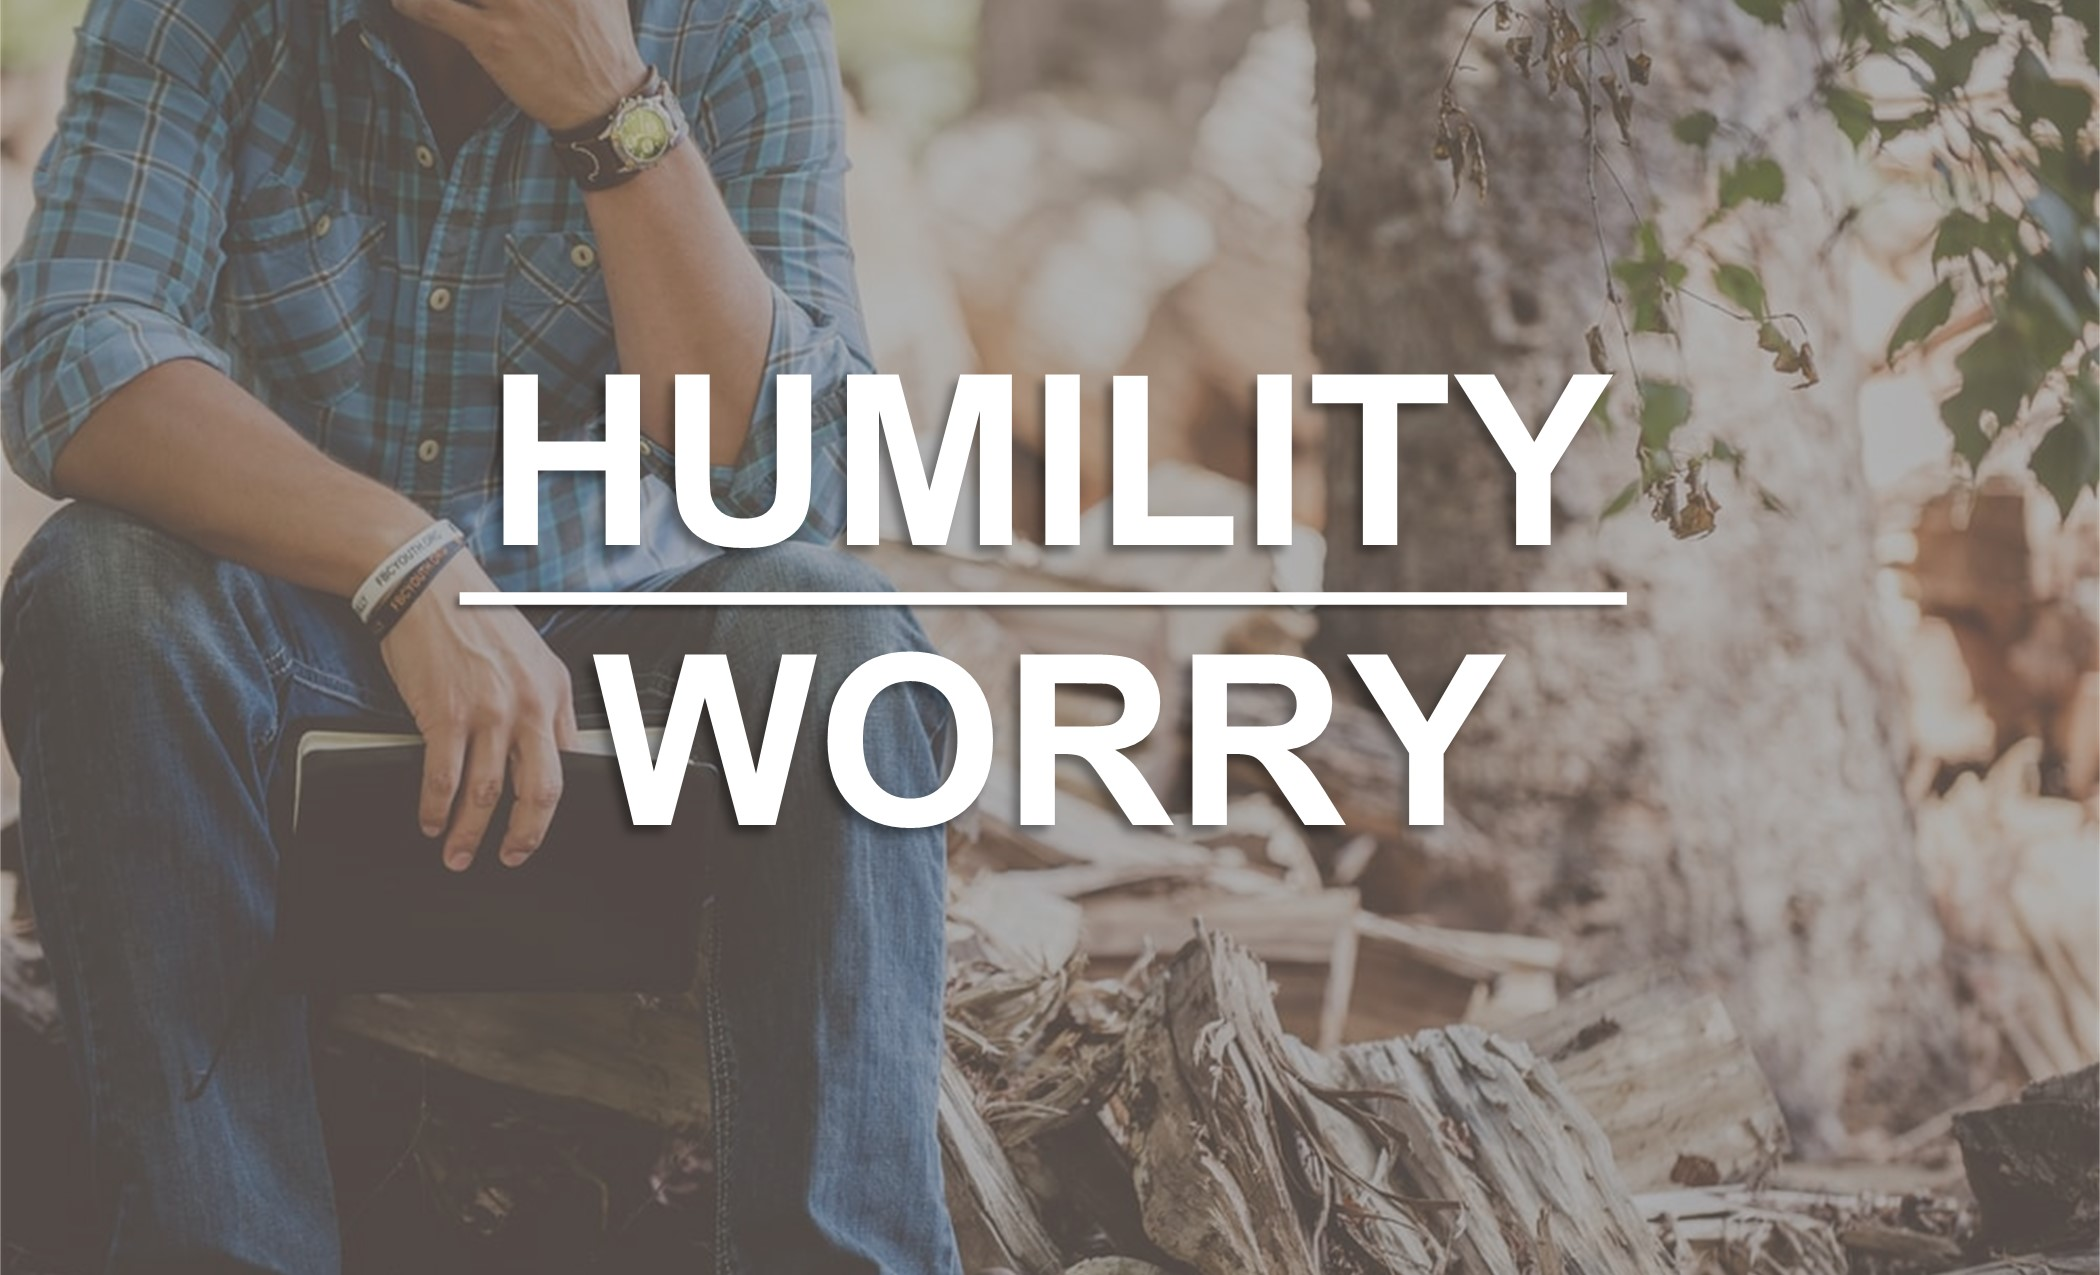 Humility and Worry